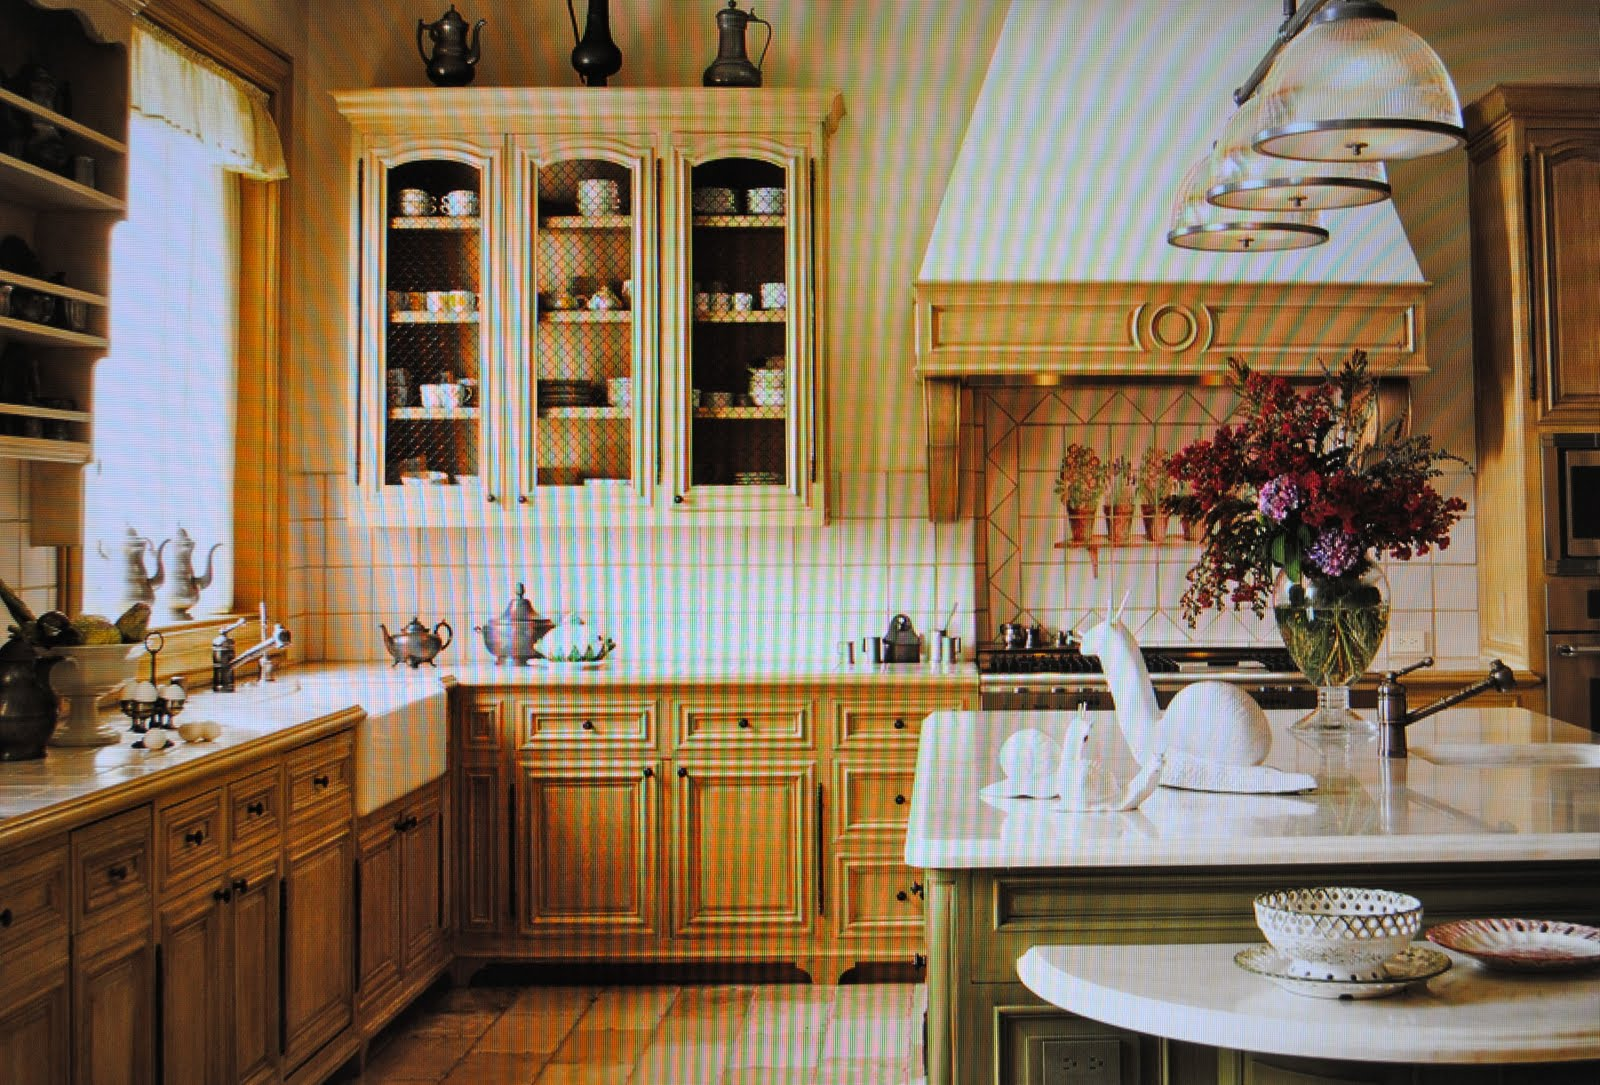 Elegant Kitchen with Island